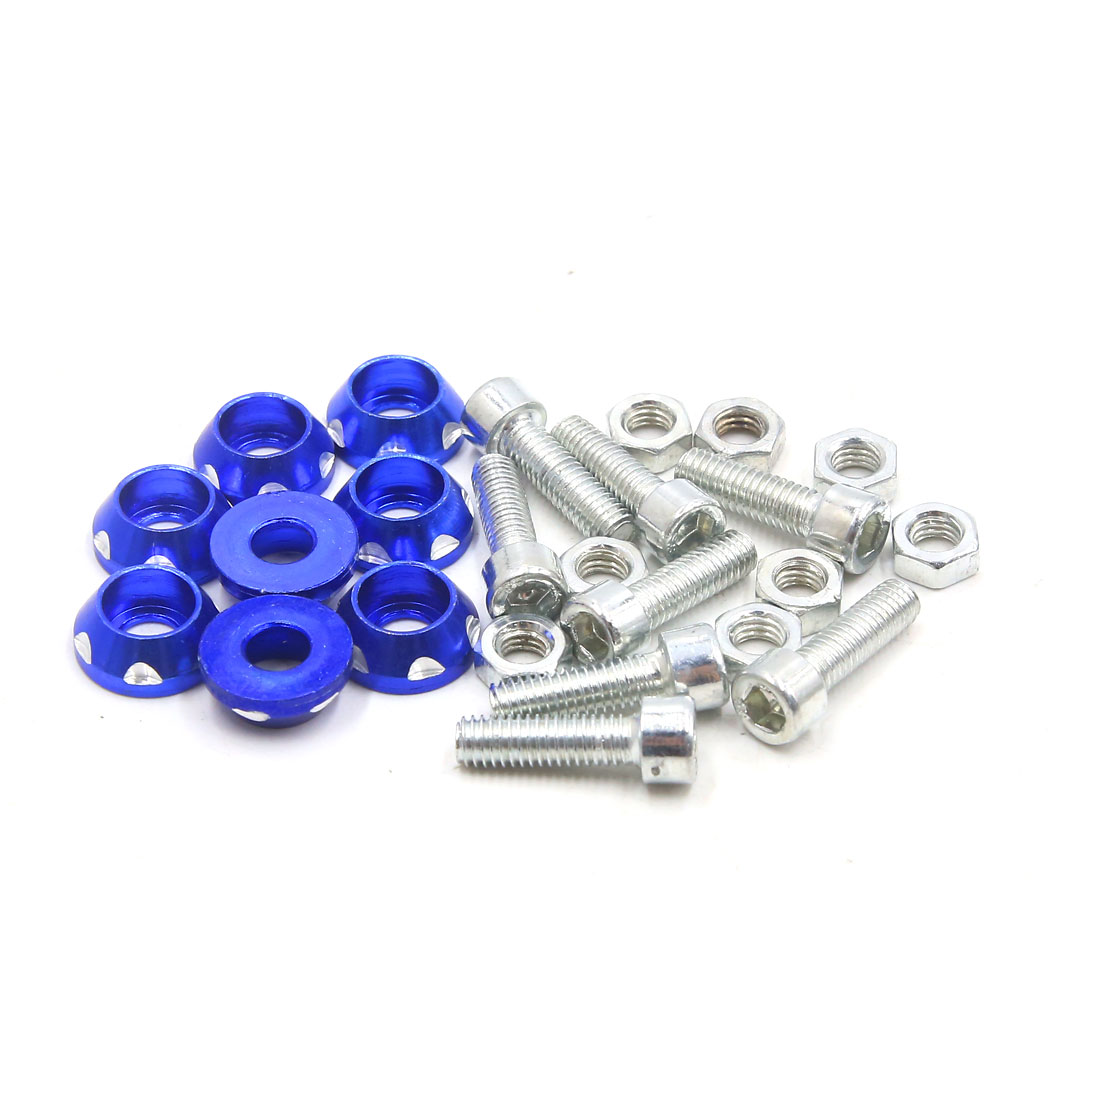 8Pcs M6 x 20mm Carved Style Motorcycle License Plate Bolts Screws Fasteners Blue